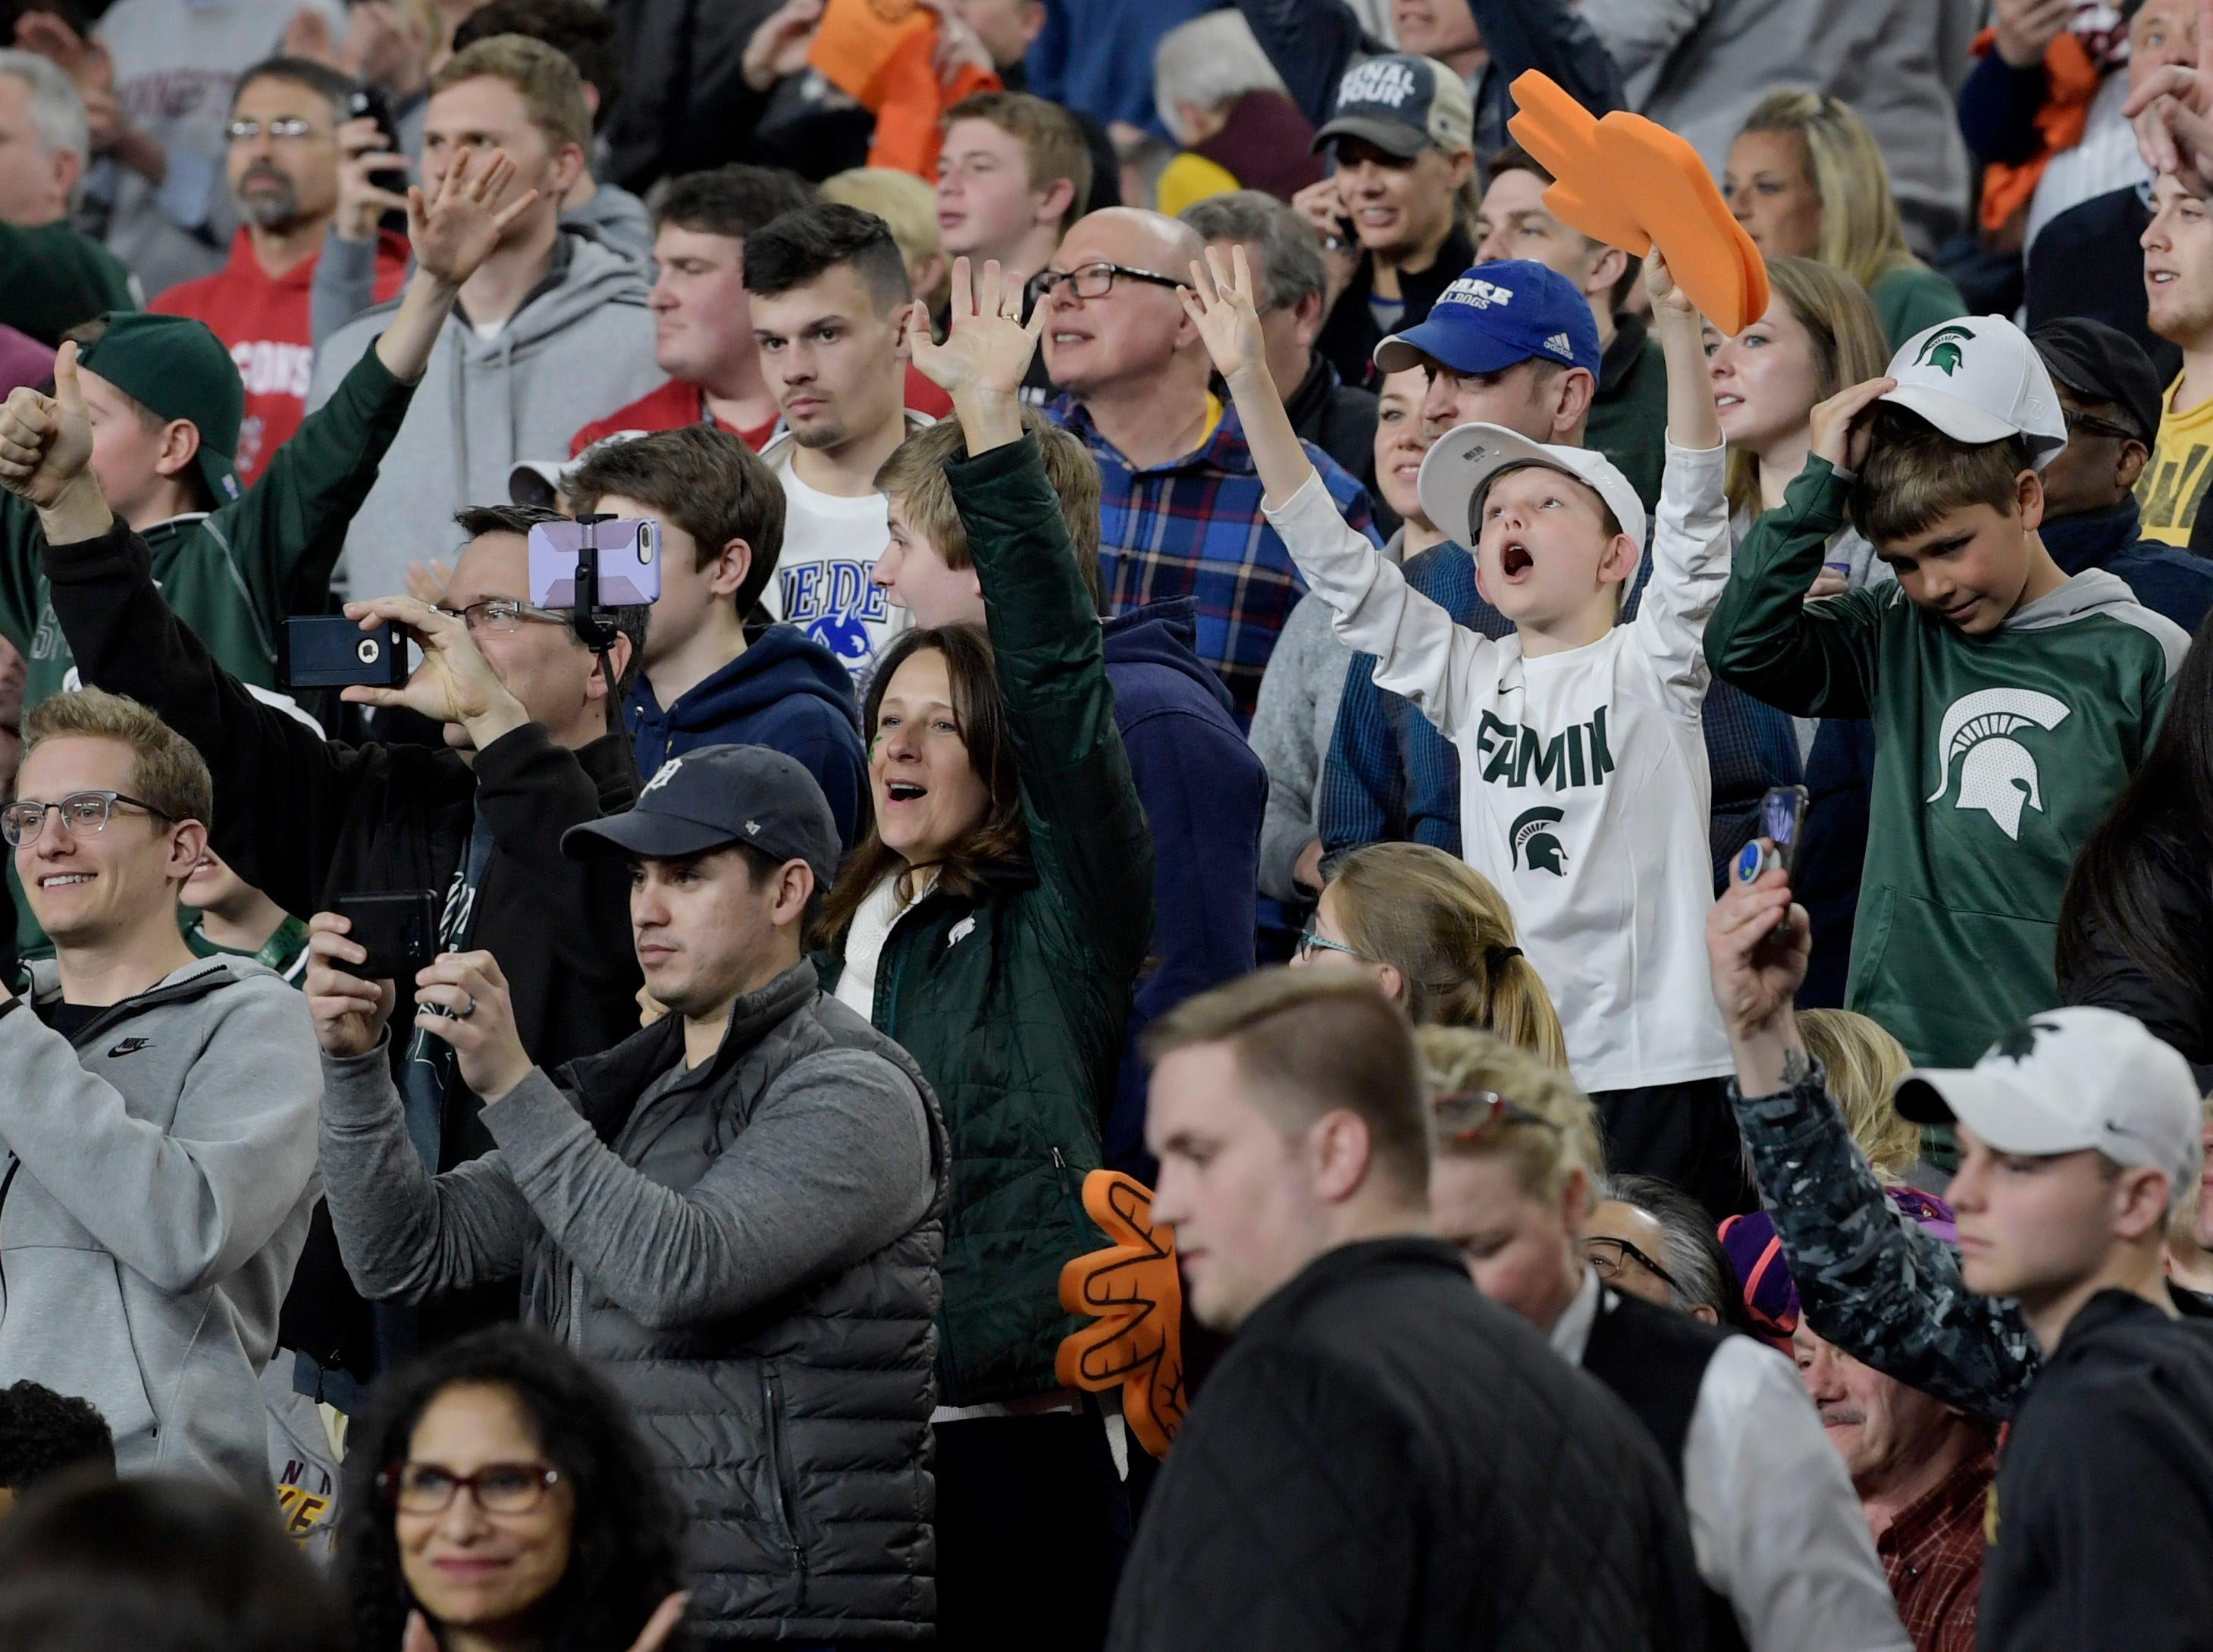 Michigan State fans cheer at the end of an open practice at U.S. Bank Stadium during the Final Four in Minneapolis, Minnesota on Friday, April 5, 2019.